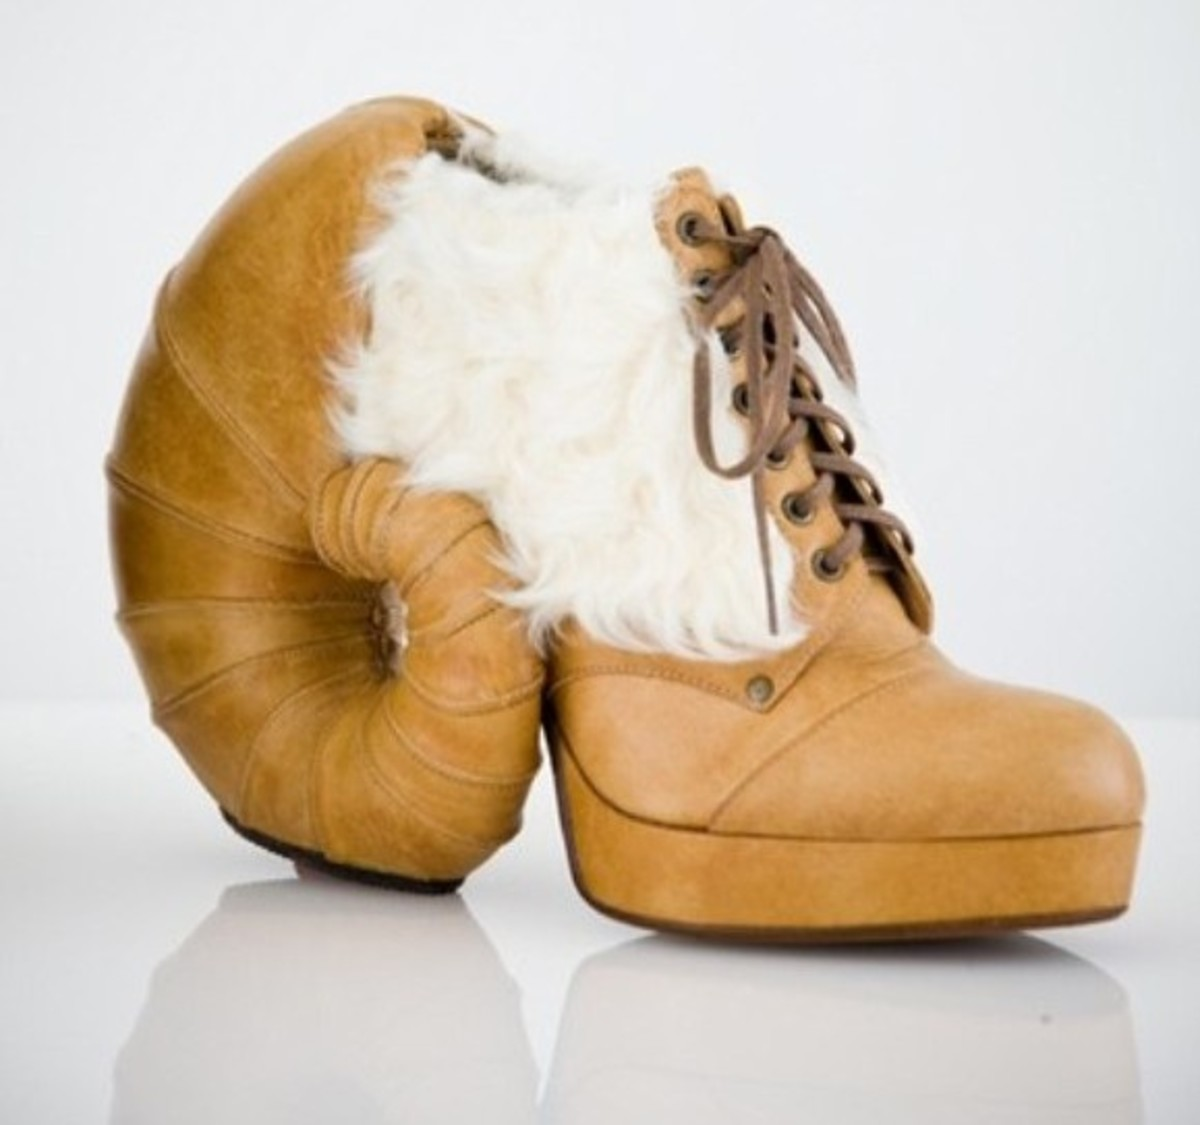 These shoes would look great with jeans and a matching taxidermied Ram Hat with eyes and flies.